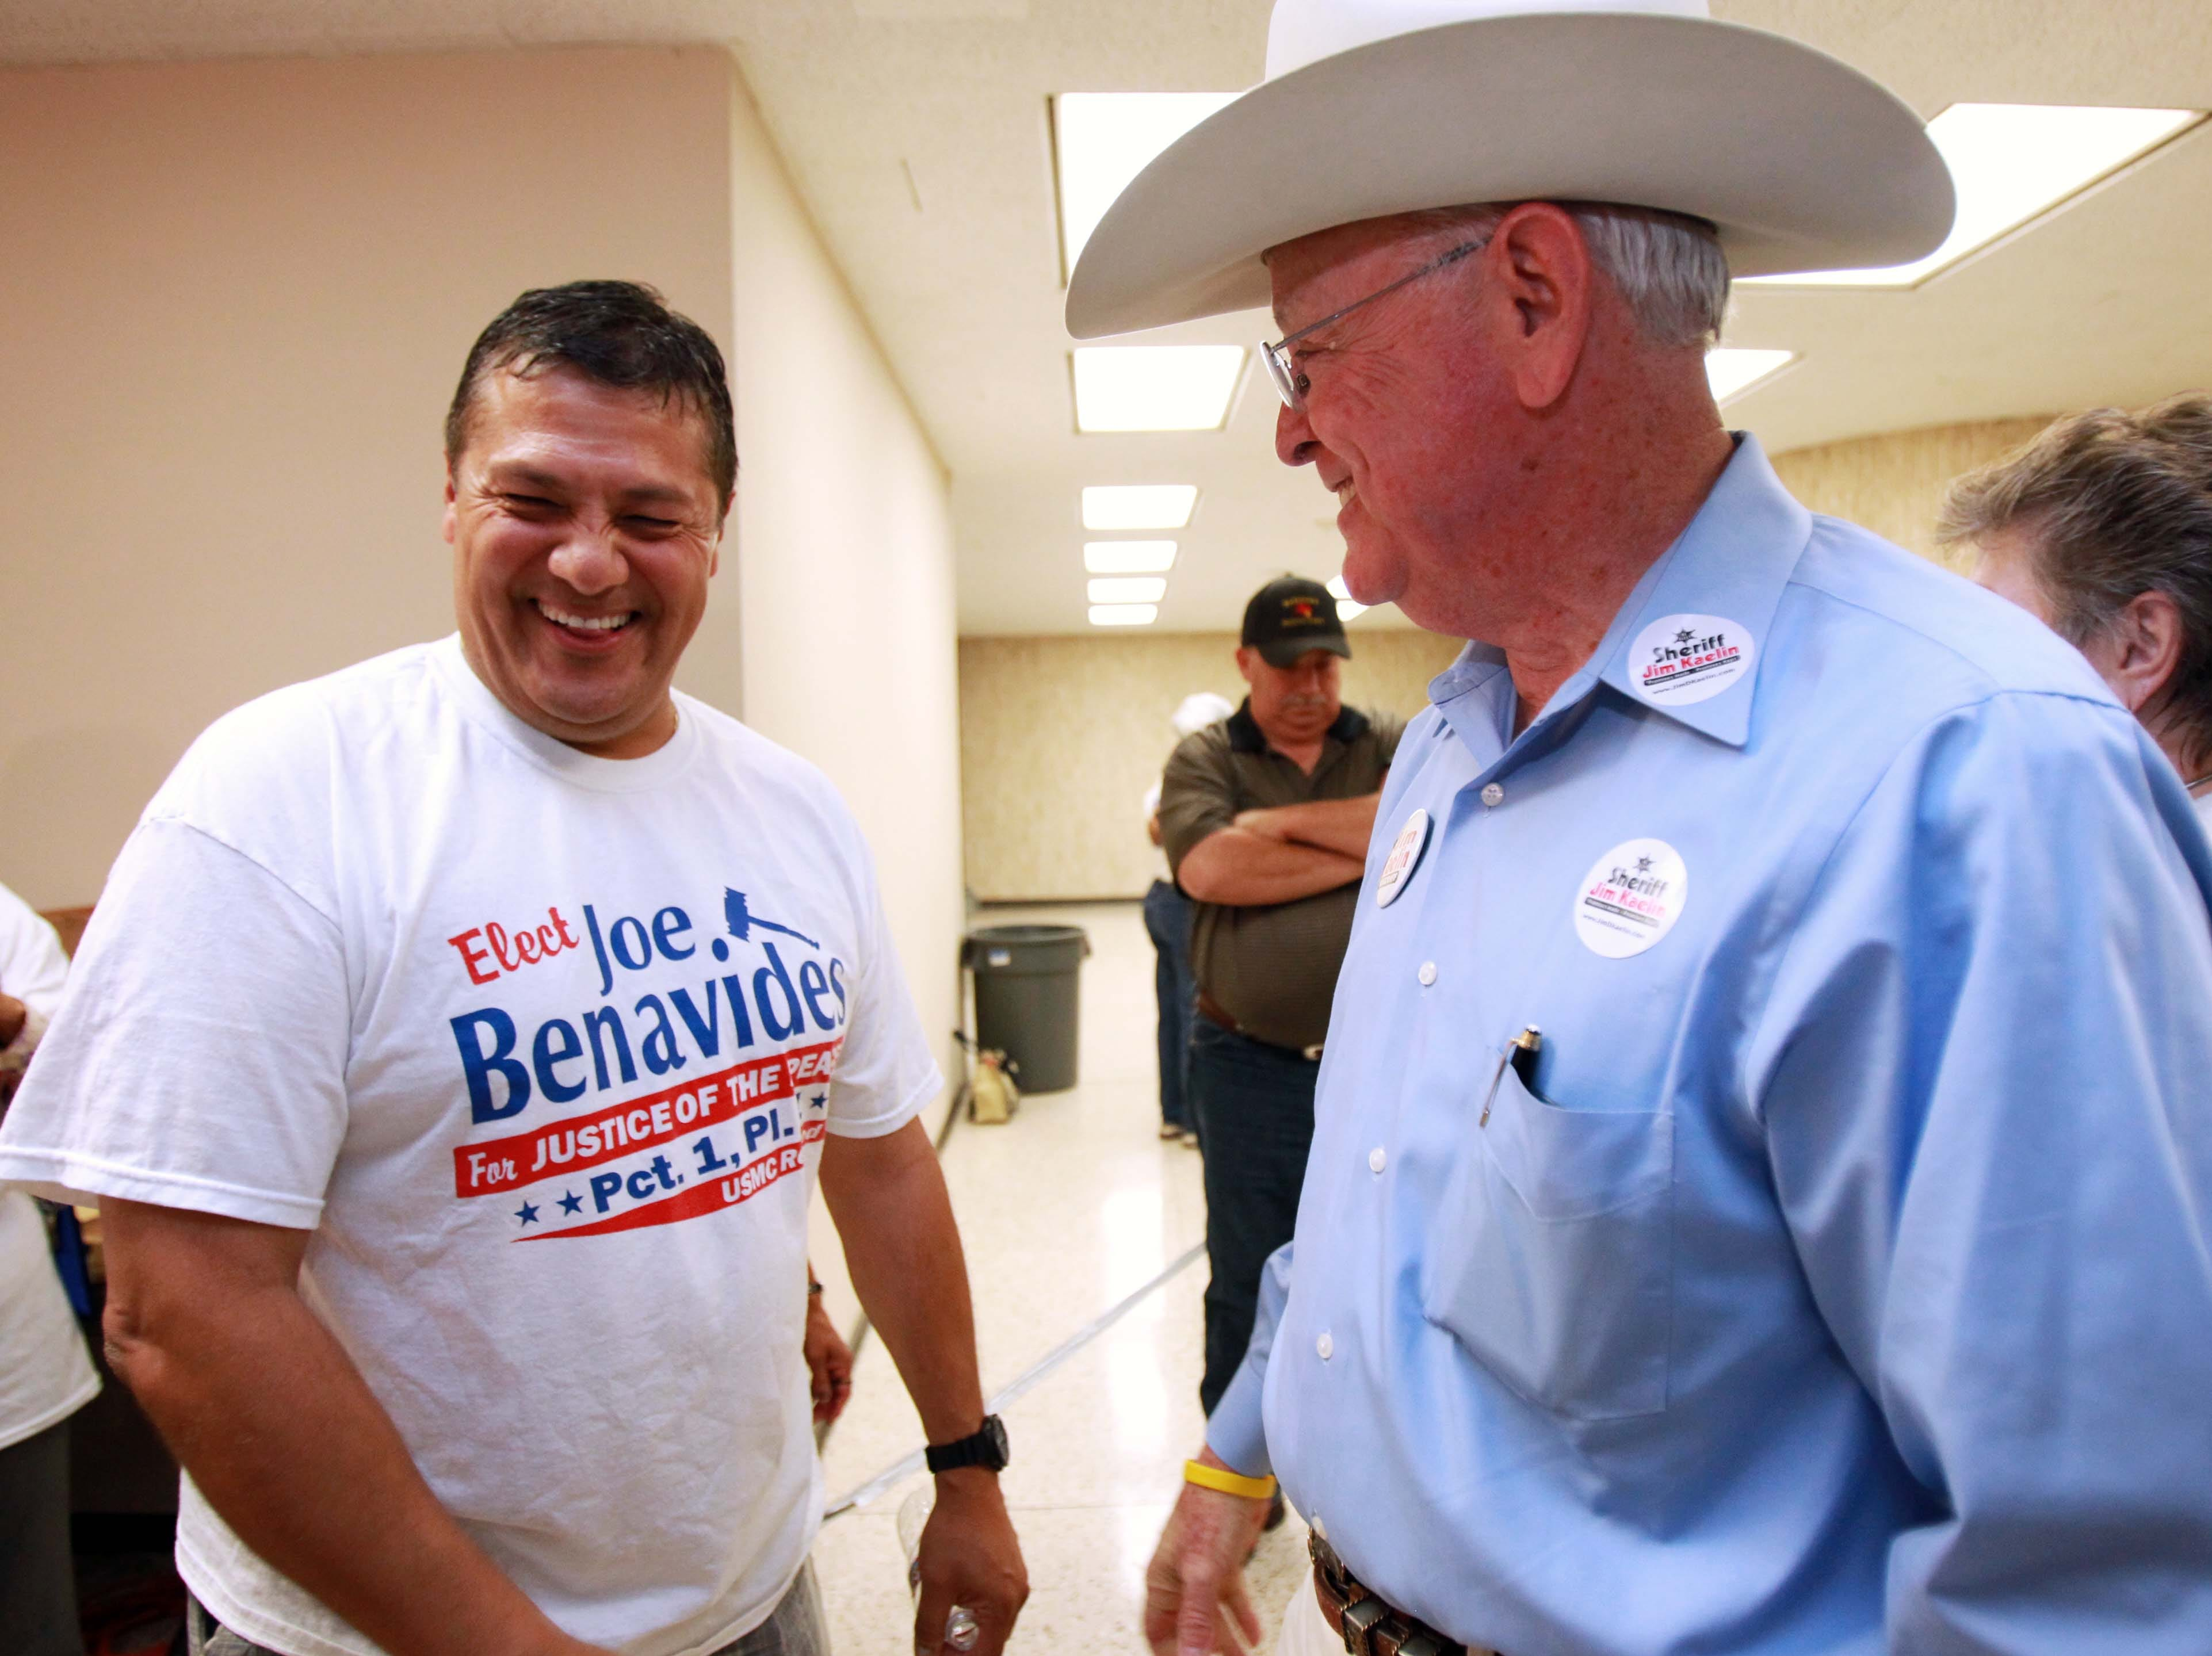 Justice of the Peace candidate Joe Benavides (left) laughs as he and Sheriff Jim Kaelin celebrate their wins Tuesday, Nov. 6, 2012 at the Nueces County Courthouse in Corpus Christi.